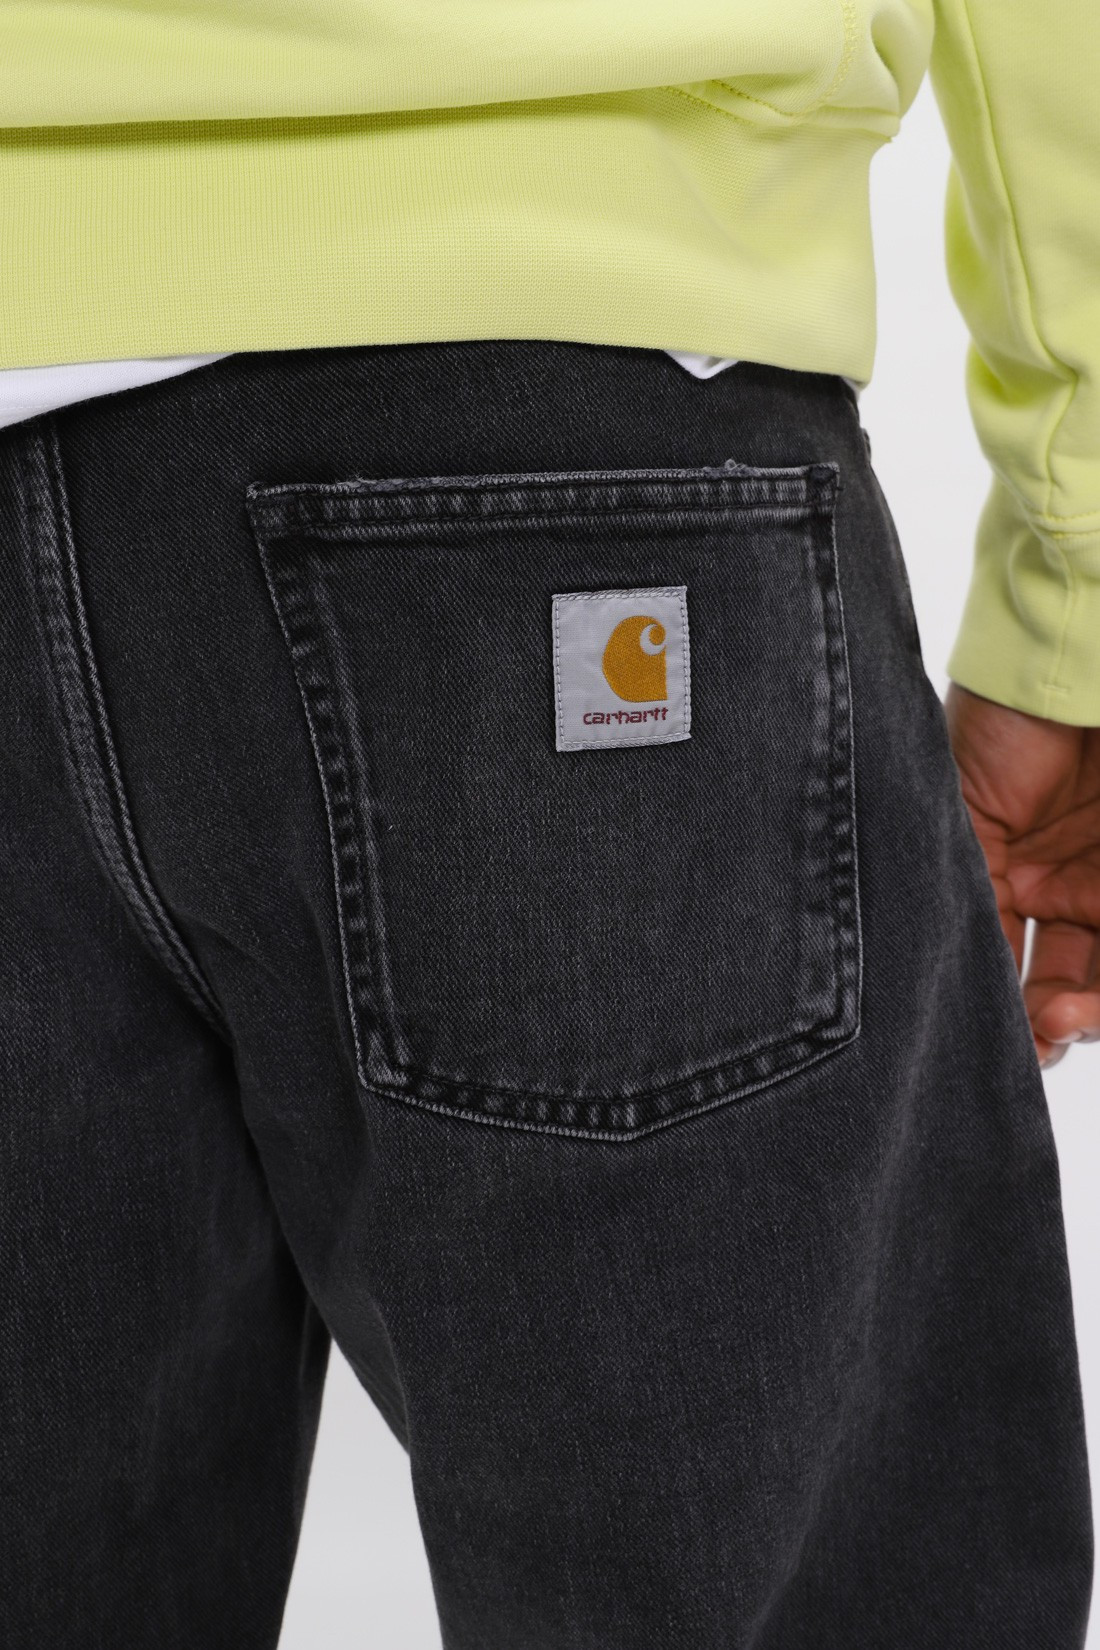 CARHARTT WIP / Newel pant cotton black Rock washed